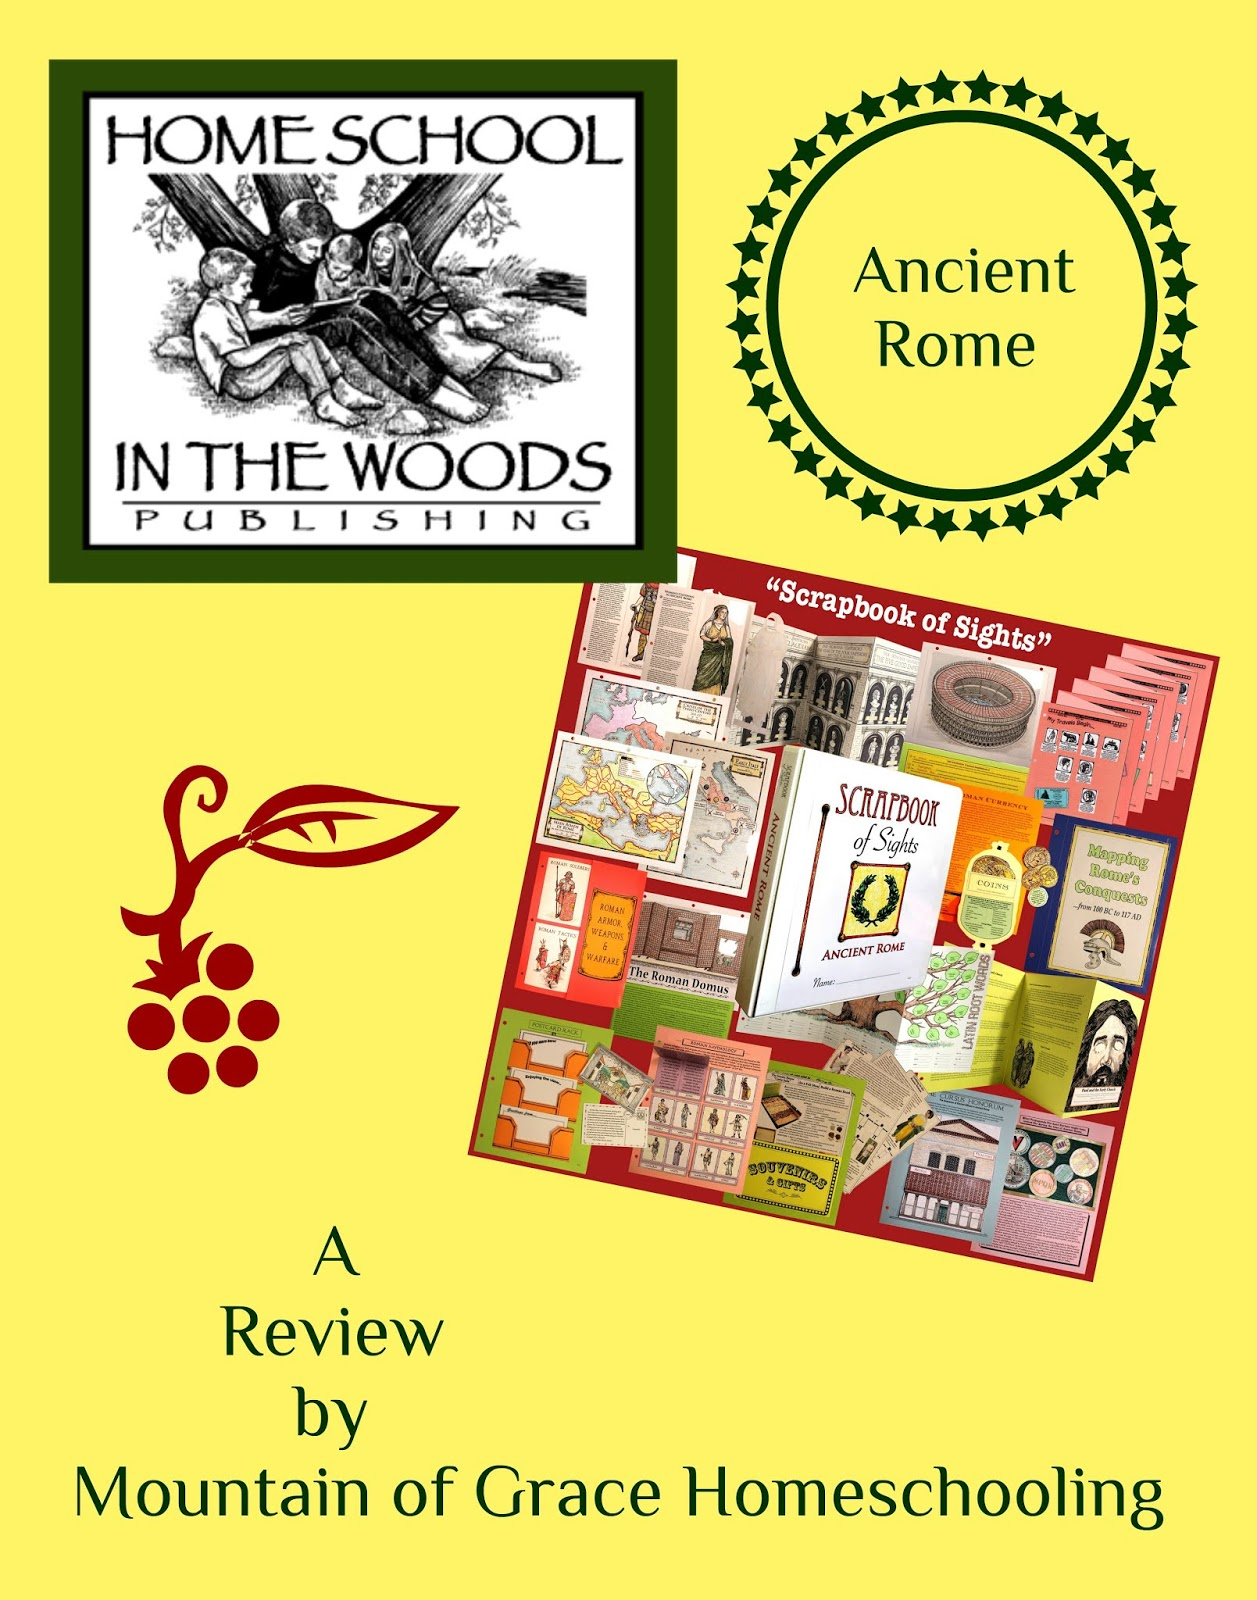 medium resolution of Mountain of Grace Homeschooling: Review~ Project Passport World History  Study: Ancient Rome from Home School in the Woods